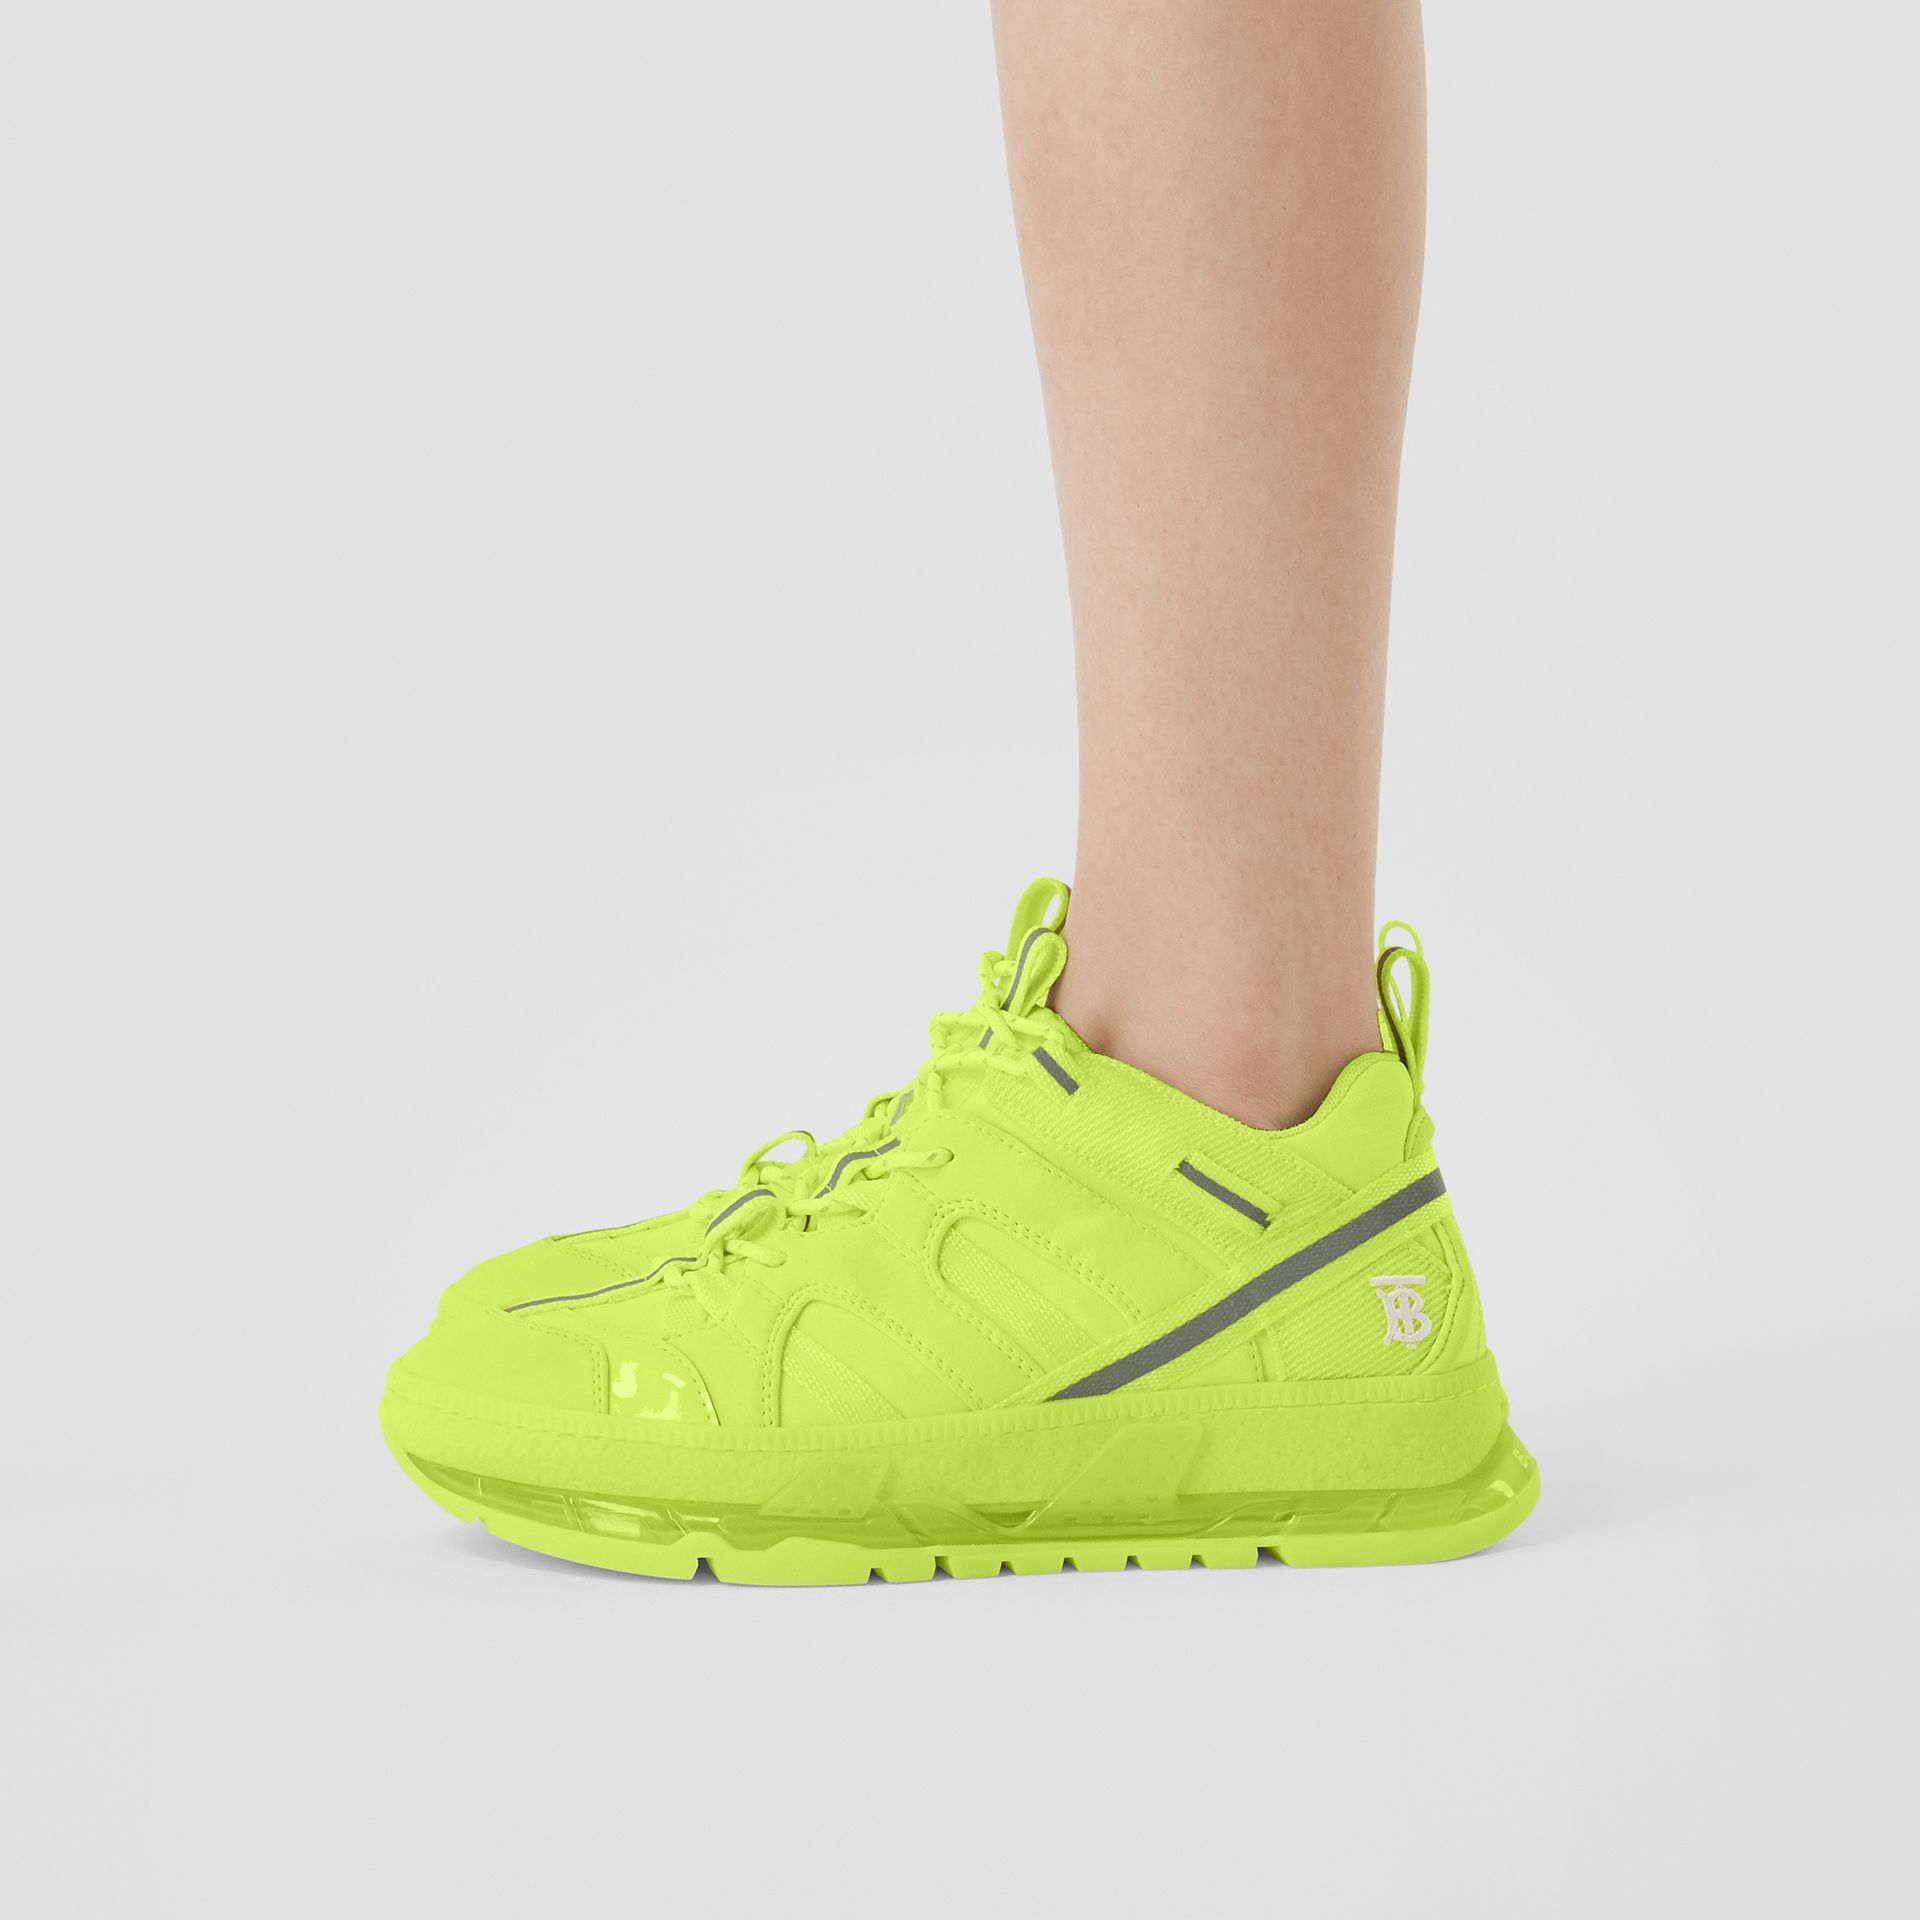 Nylon and Cotton Union Sneakers in Fluorescent Yellow - Women | Burberry - gallery image 2